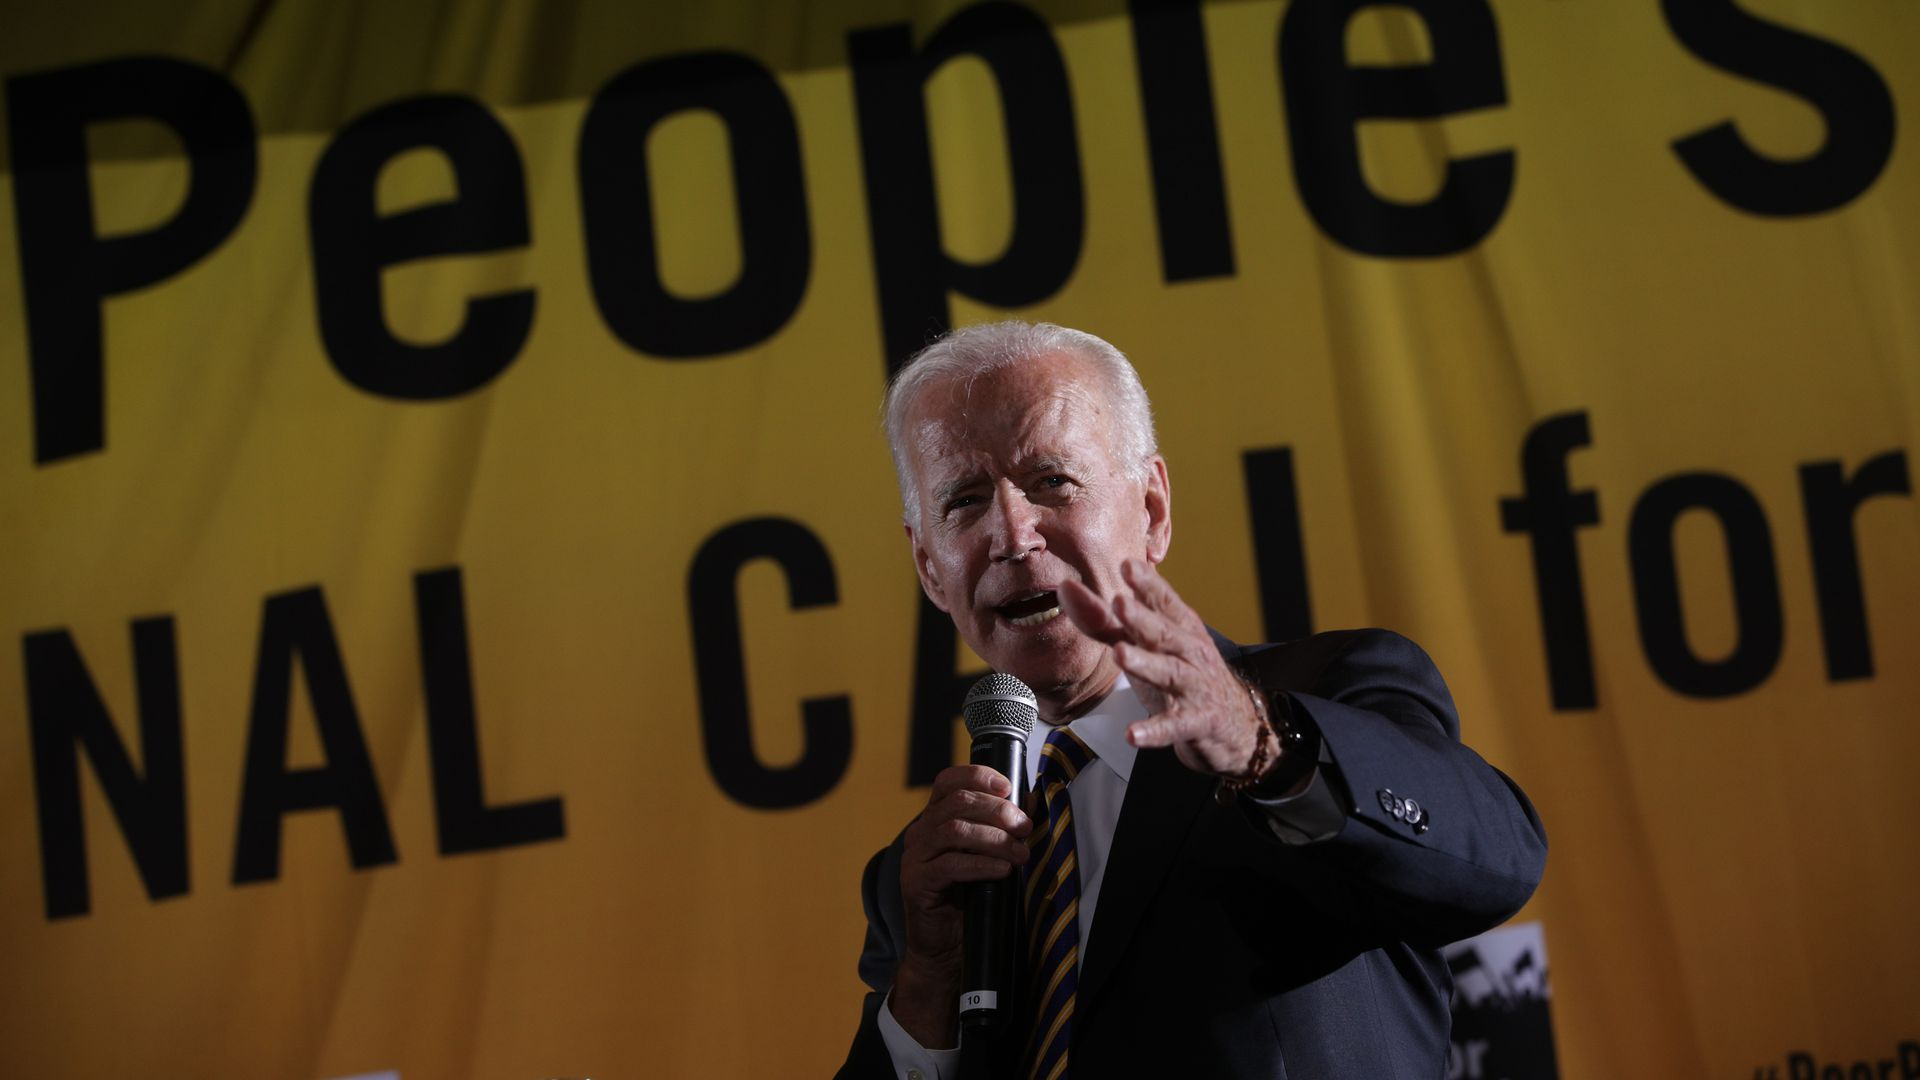 Biden defends working with Republicans to achieve consensus